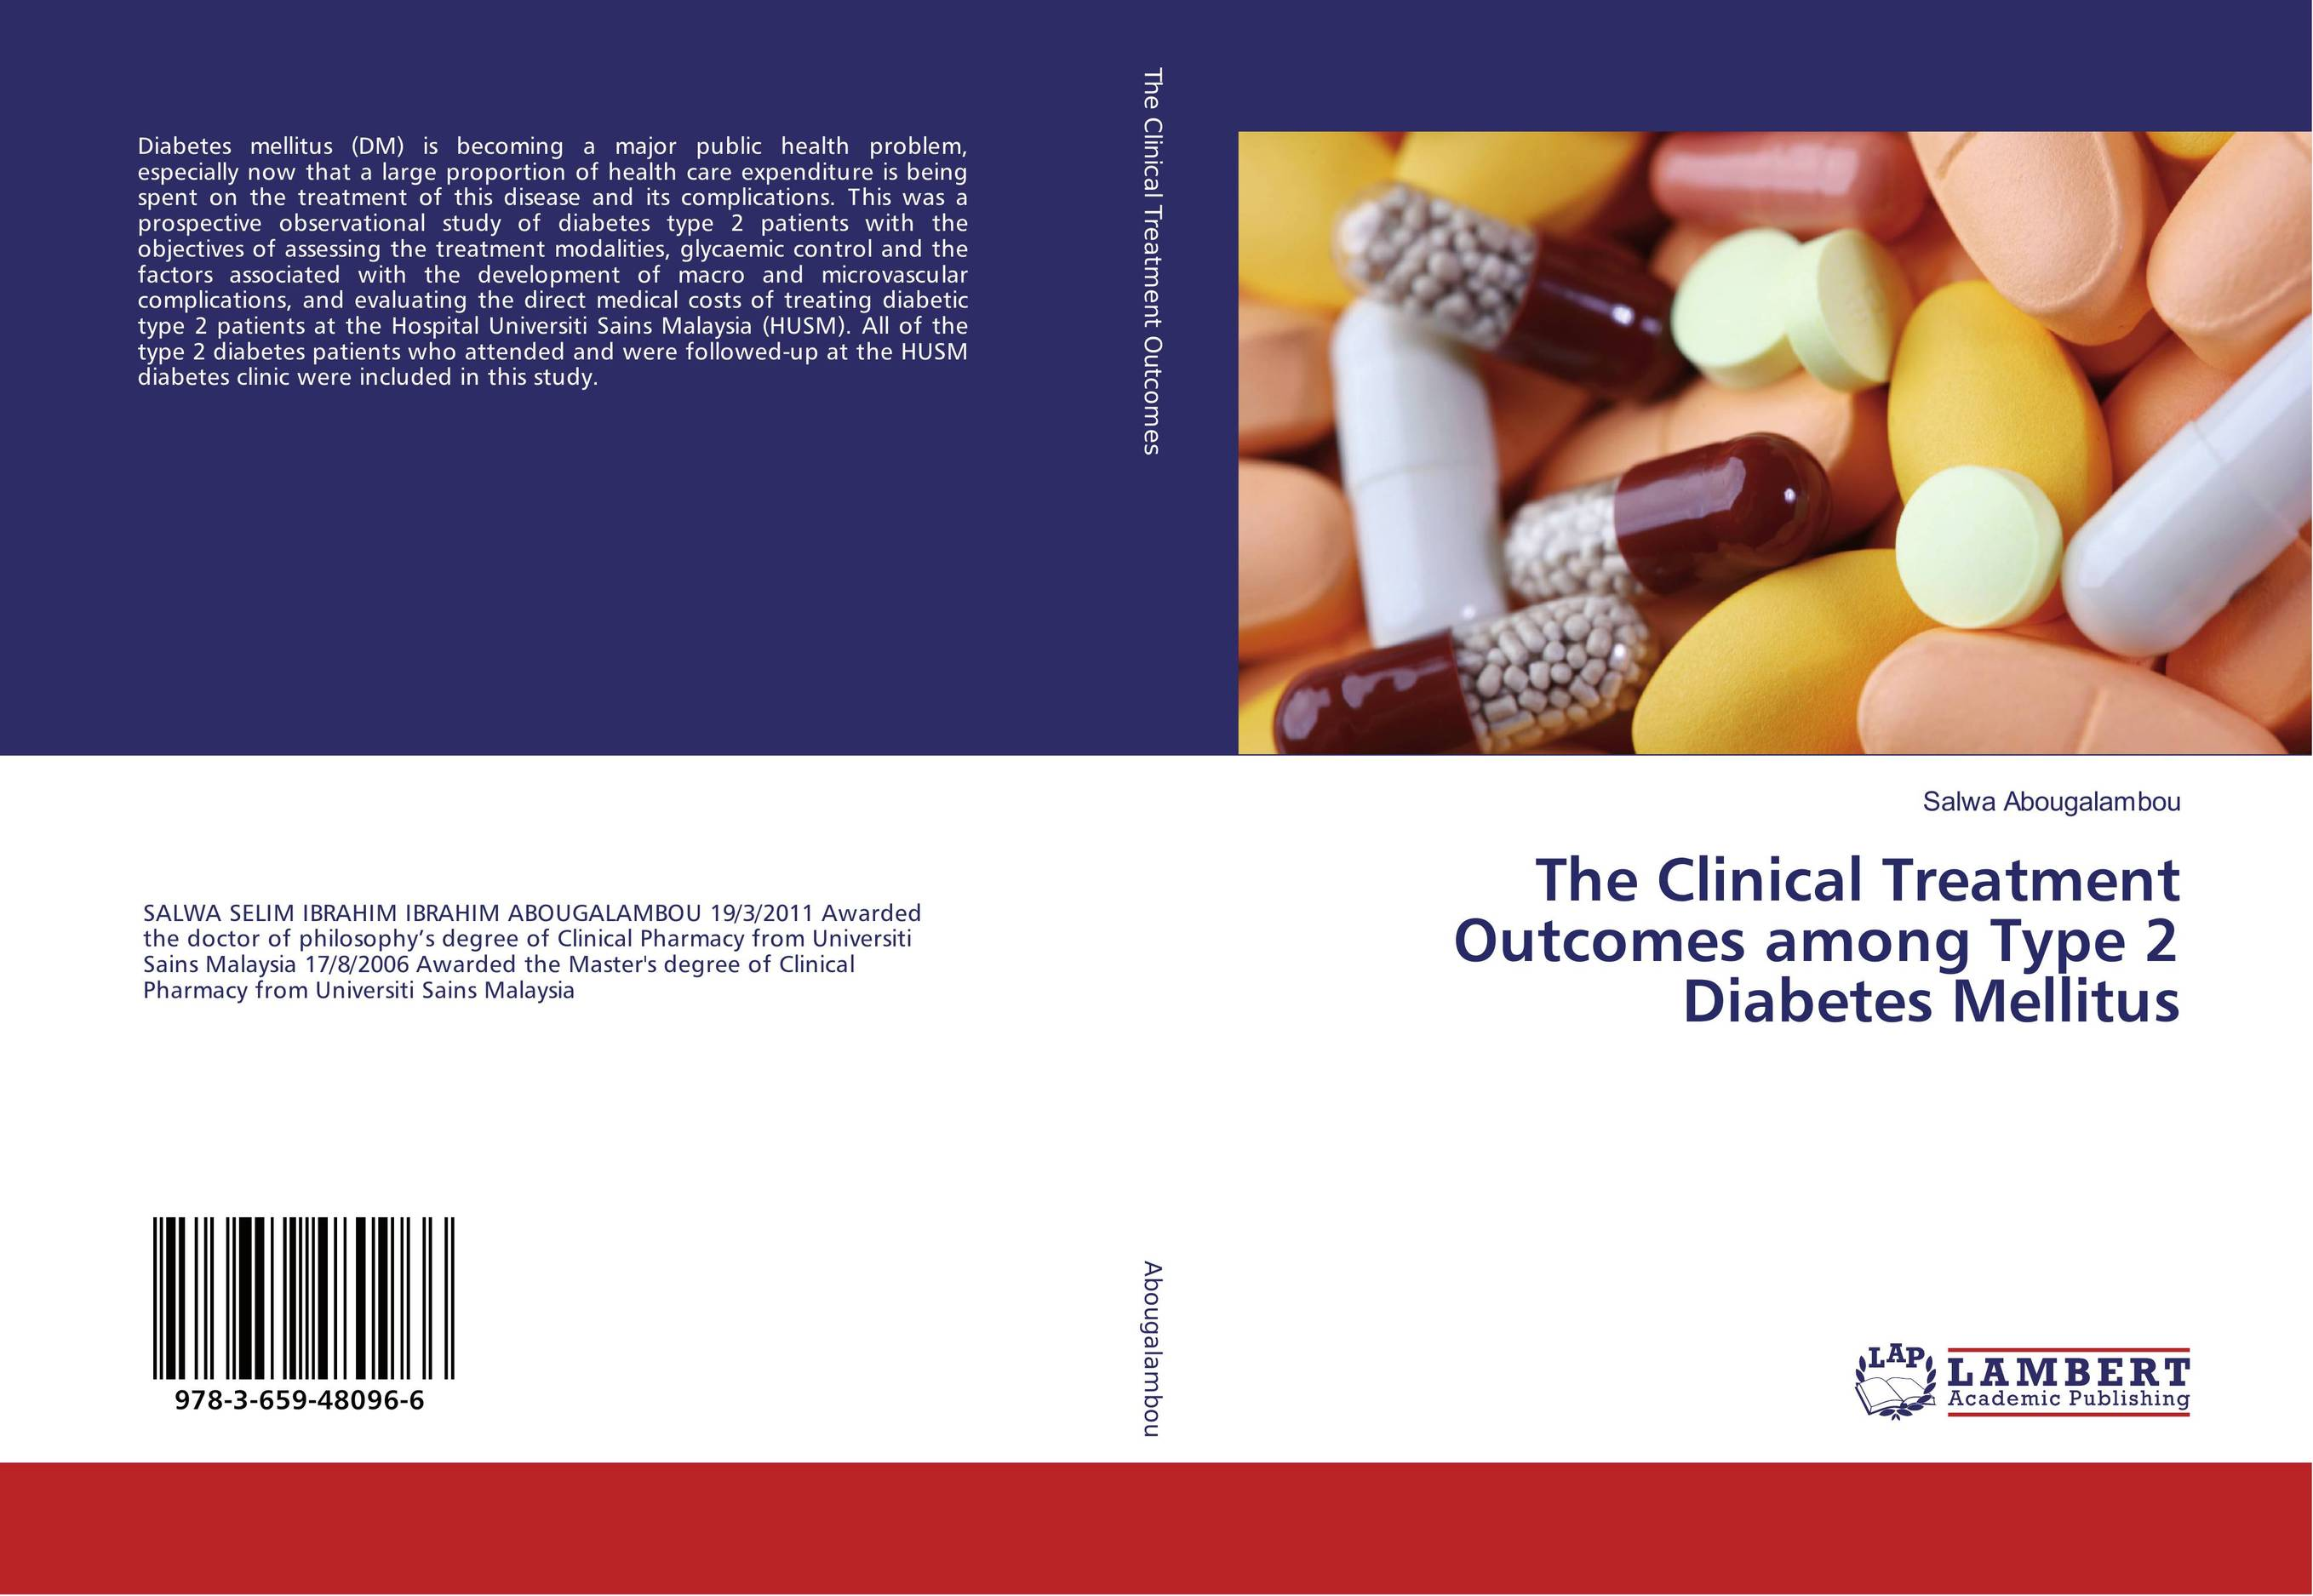 The Clinical Treatment Outcomes among Type 2 Diabetes Mellitus the management of diabetes mellitus and late diabetic complications